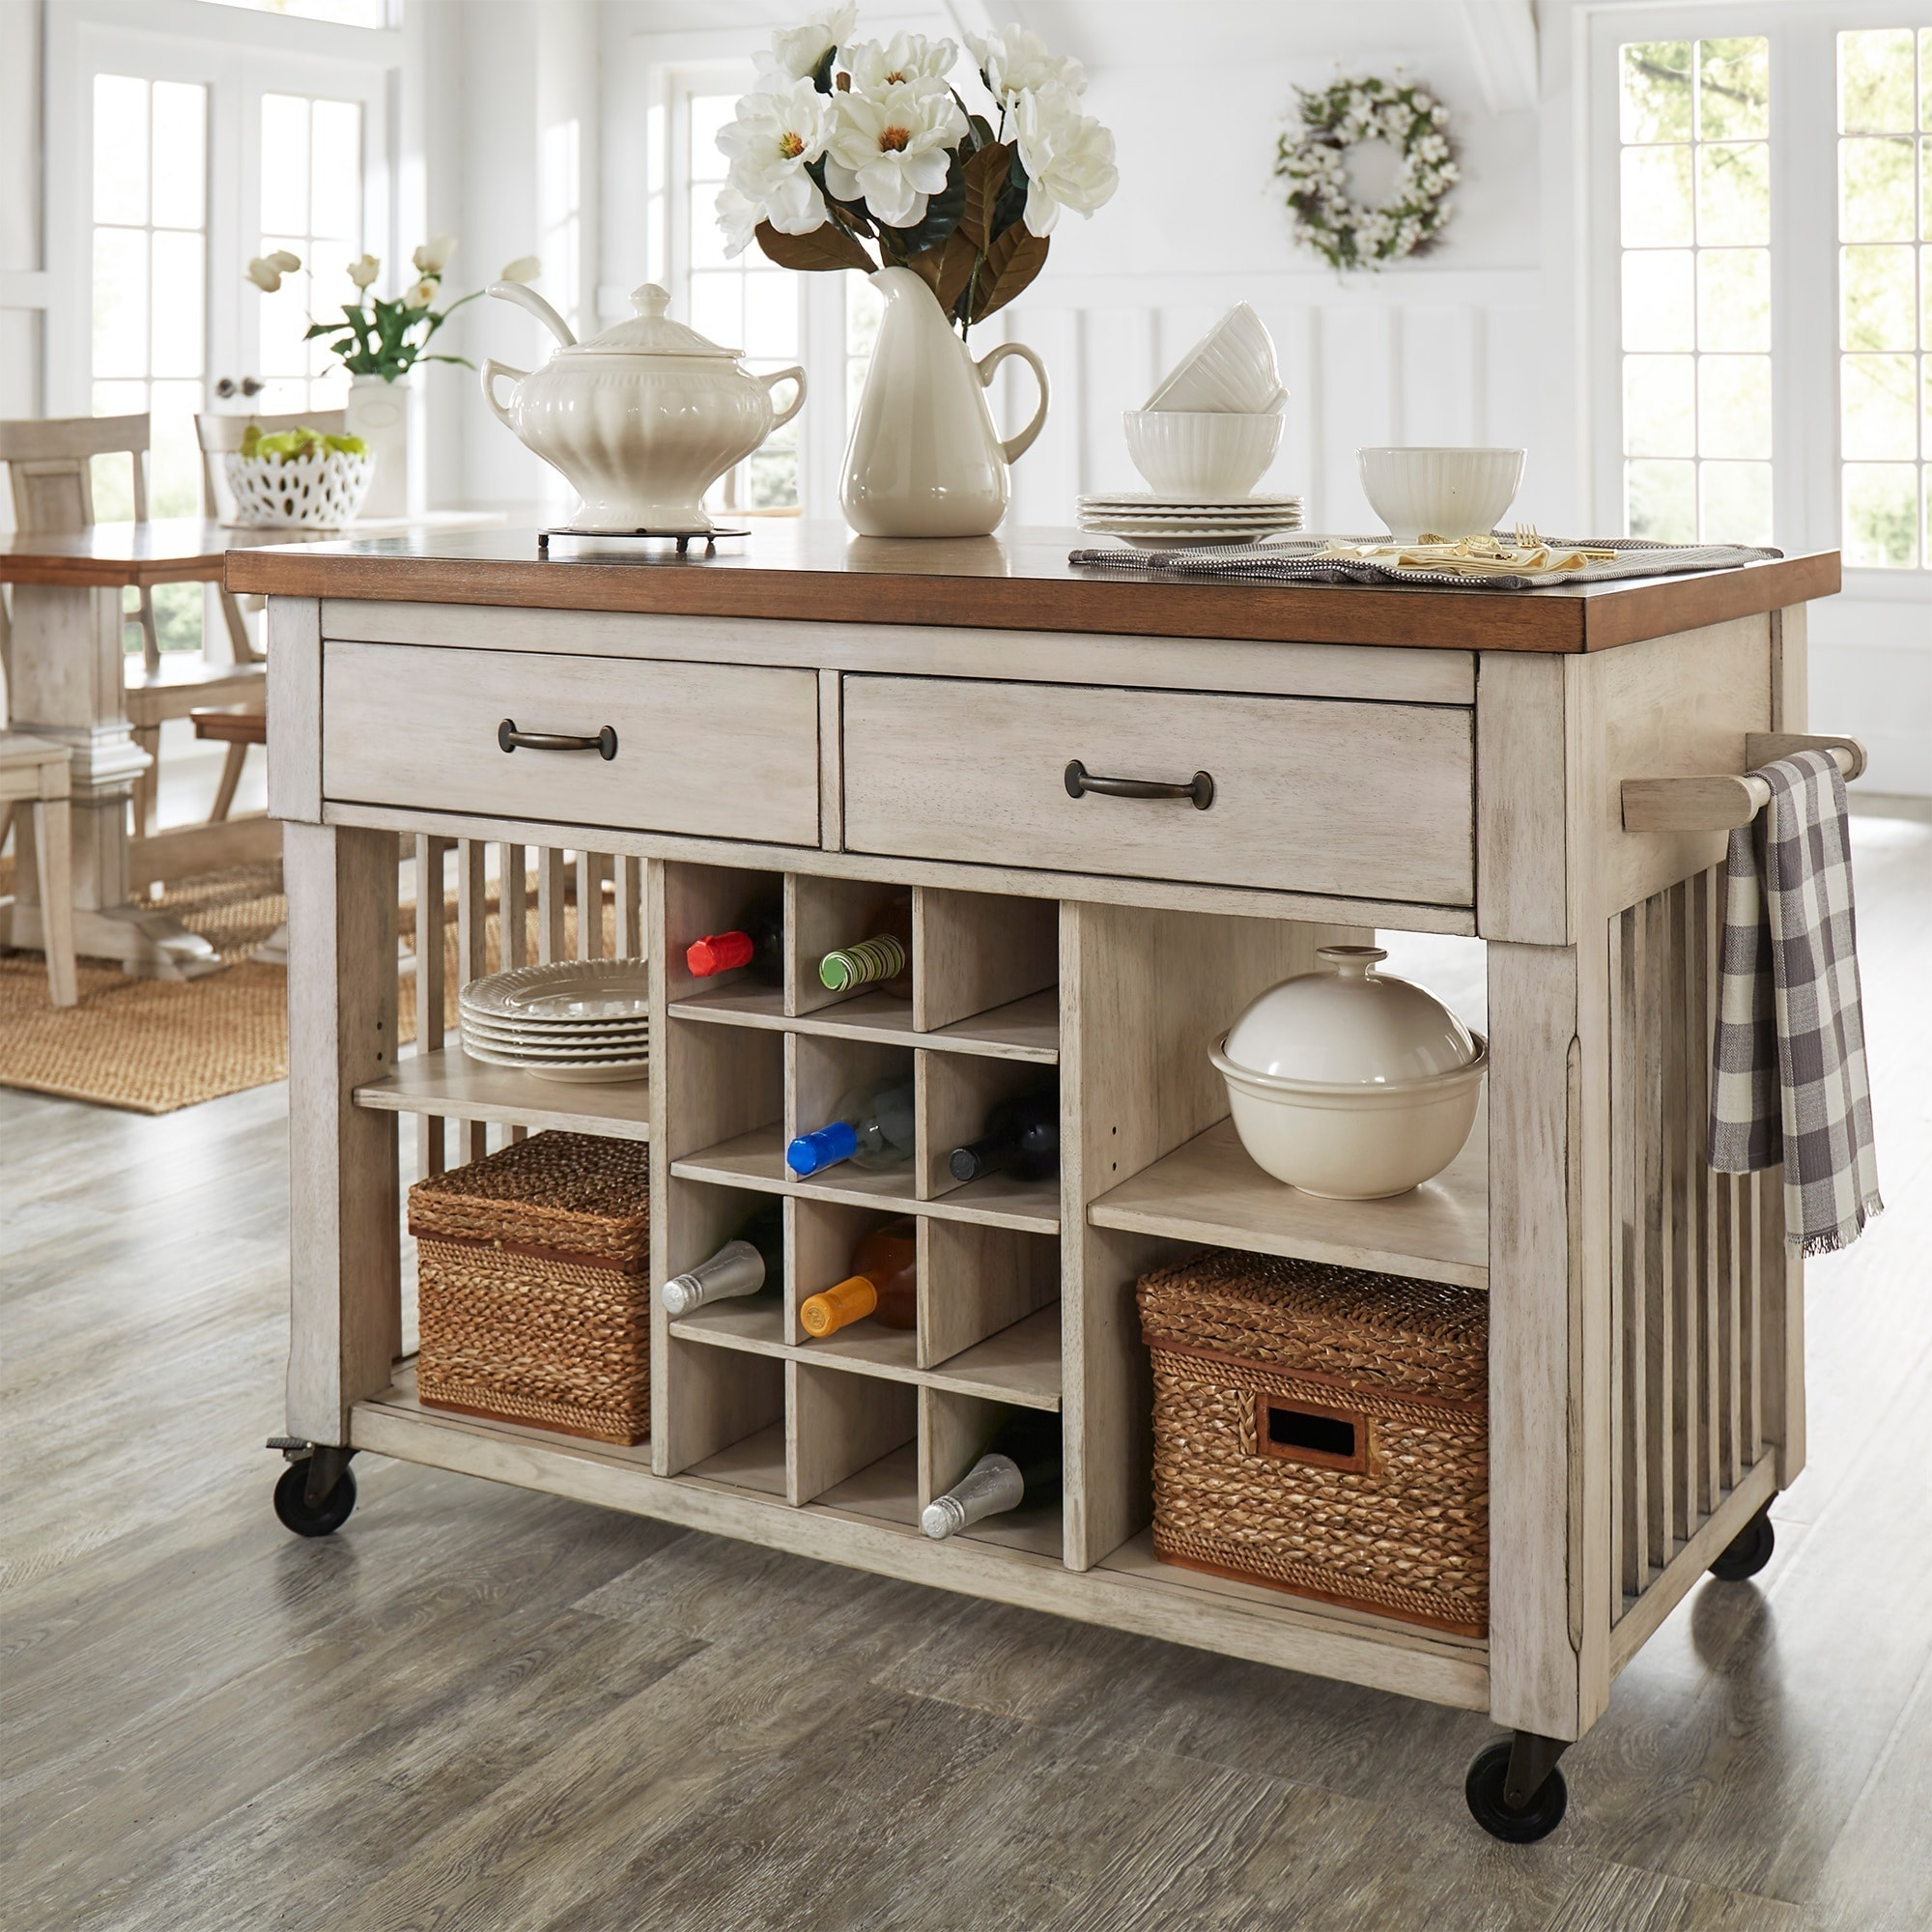 Eleanor Two Tone Rolling Kitchen Island With Wine Rack By Inspire Q Clic Free Shipping Today 13985209